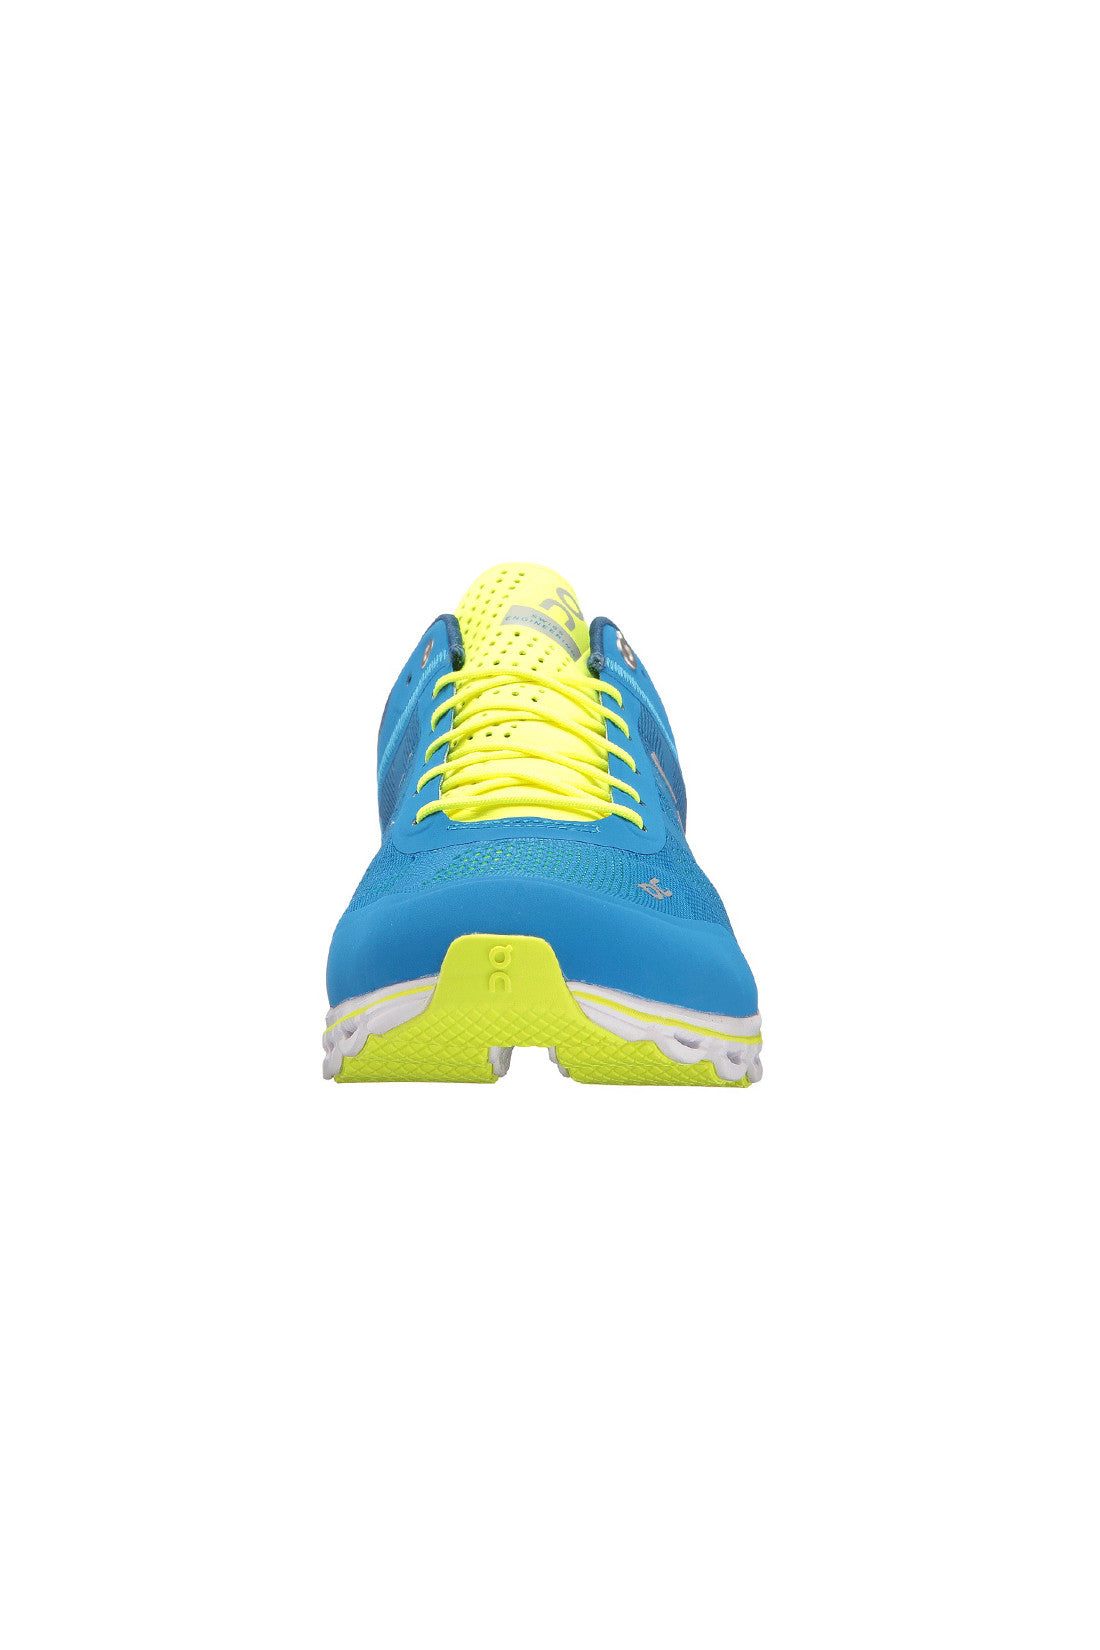 Men's ON Cloudflow - Malibu Neon